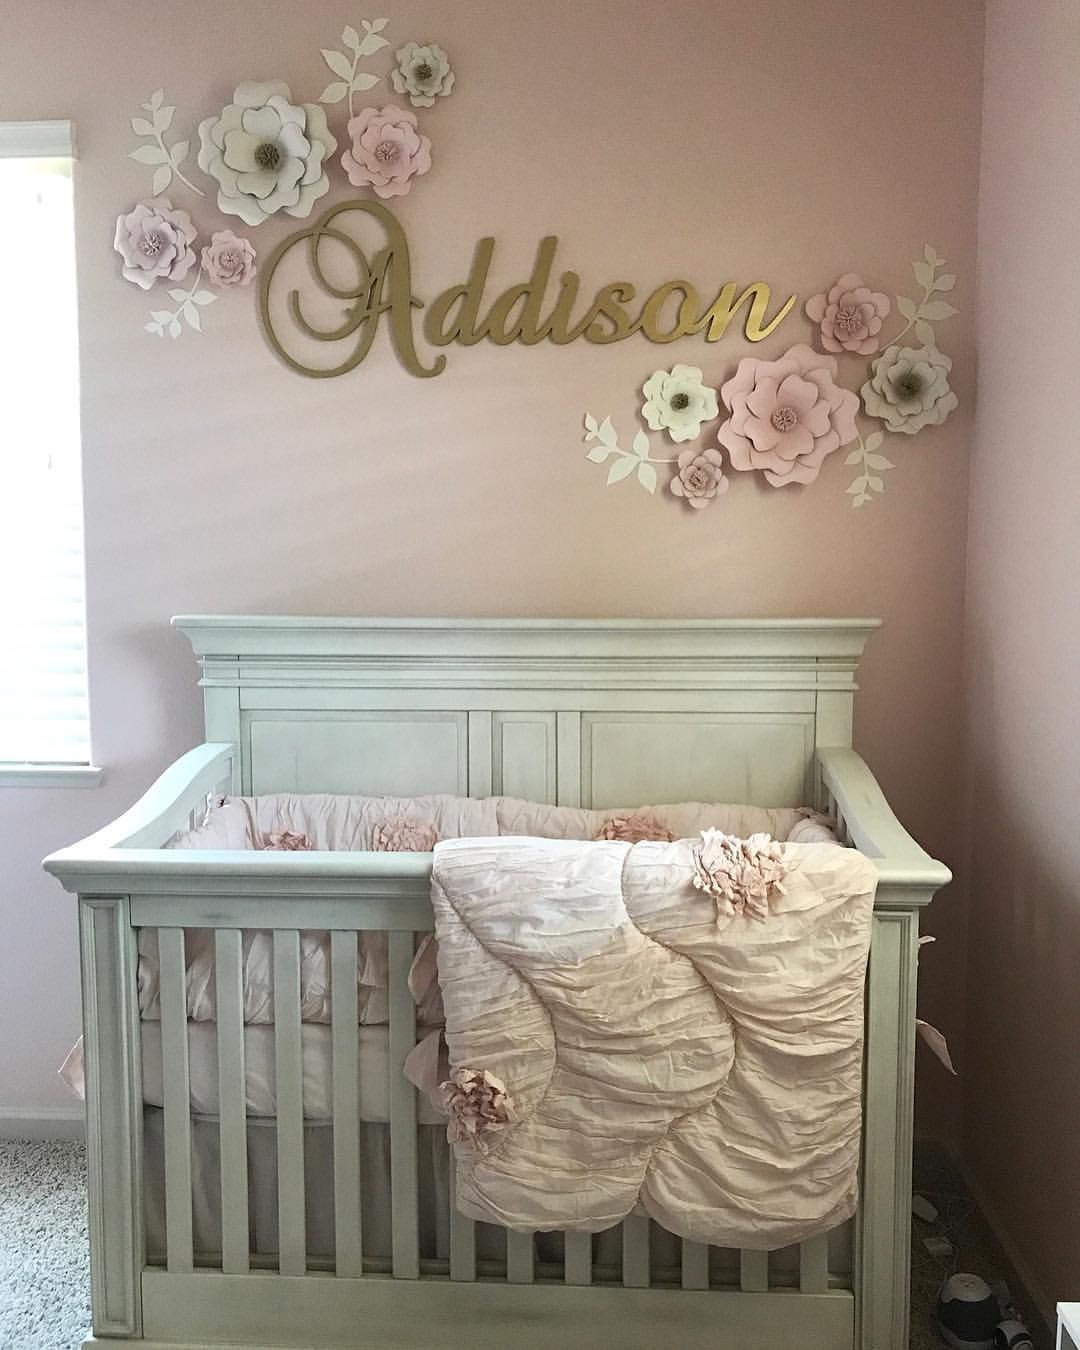 6 300 Likes 76 Comments Decor For Kids Home Decor